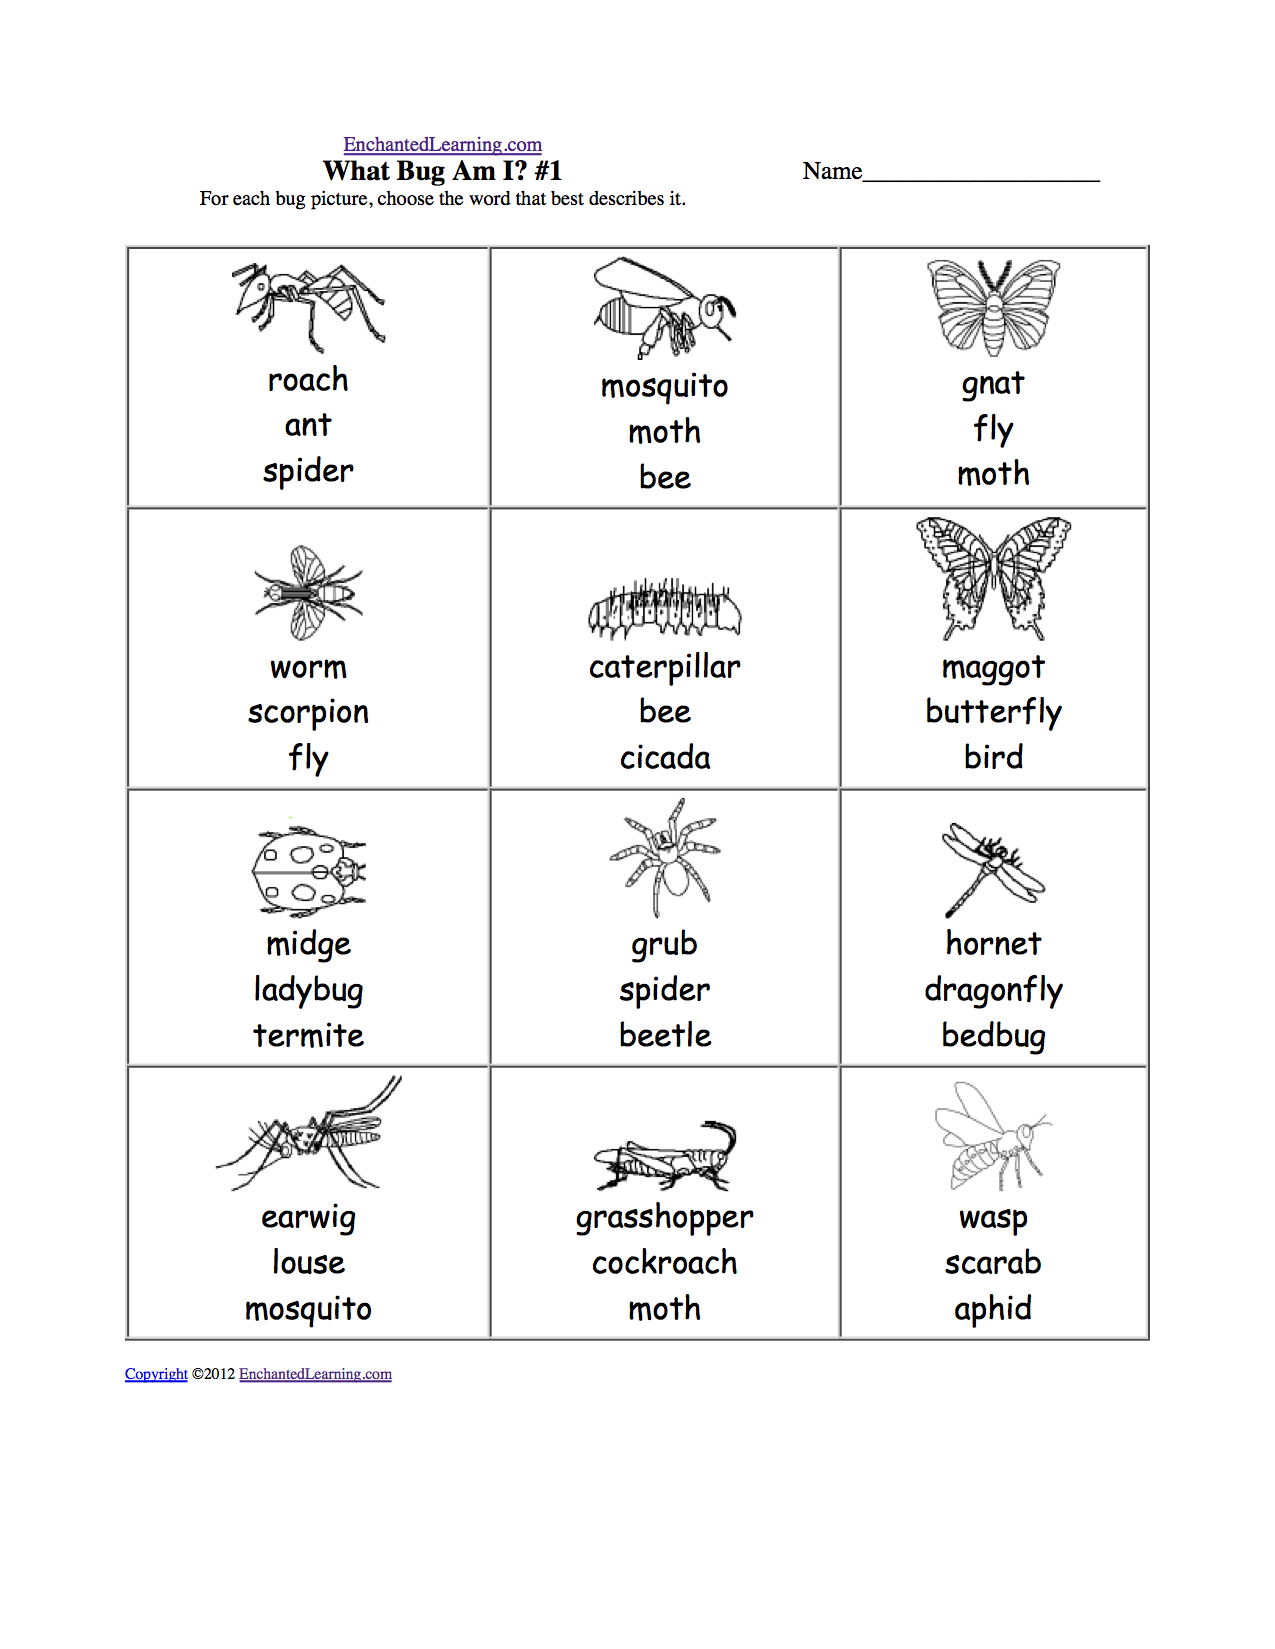 Aldiablosus  Picturesque What Am I Worksheet Printouts  Enchantedlearningcom With Luxury Fitt Worksheet Besides Preschool Shape Worksheet Furthermore Object And Subject Pronoun Worksheets With Nice Beginner Theory Worksheets Also Grade  Worksheets English In Addition Grid Multiplication Worksheet And Quantum Numbers Chemistry Worksheet As Well As The Ten Commandments For Kids Worksheets Additionally Worksheets For Shapes For Kindergarten From Enchantedlearningcom With Aldiablosus  Luxury What Am I Worksheet Printouts  Enchantedlearningcom With Nice Fitt Worksheet Besides Preschool Shape Worksheet Furthermore Object And Subject Pronoun Worksheets And Picturesque Beginner Theory Worksheets Also Grade  Worksheets English In Addition Grid Multiplication Worksheet From Enchantedlearningcom